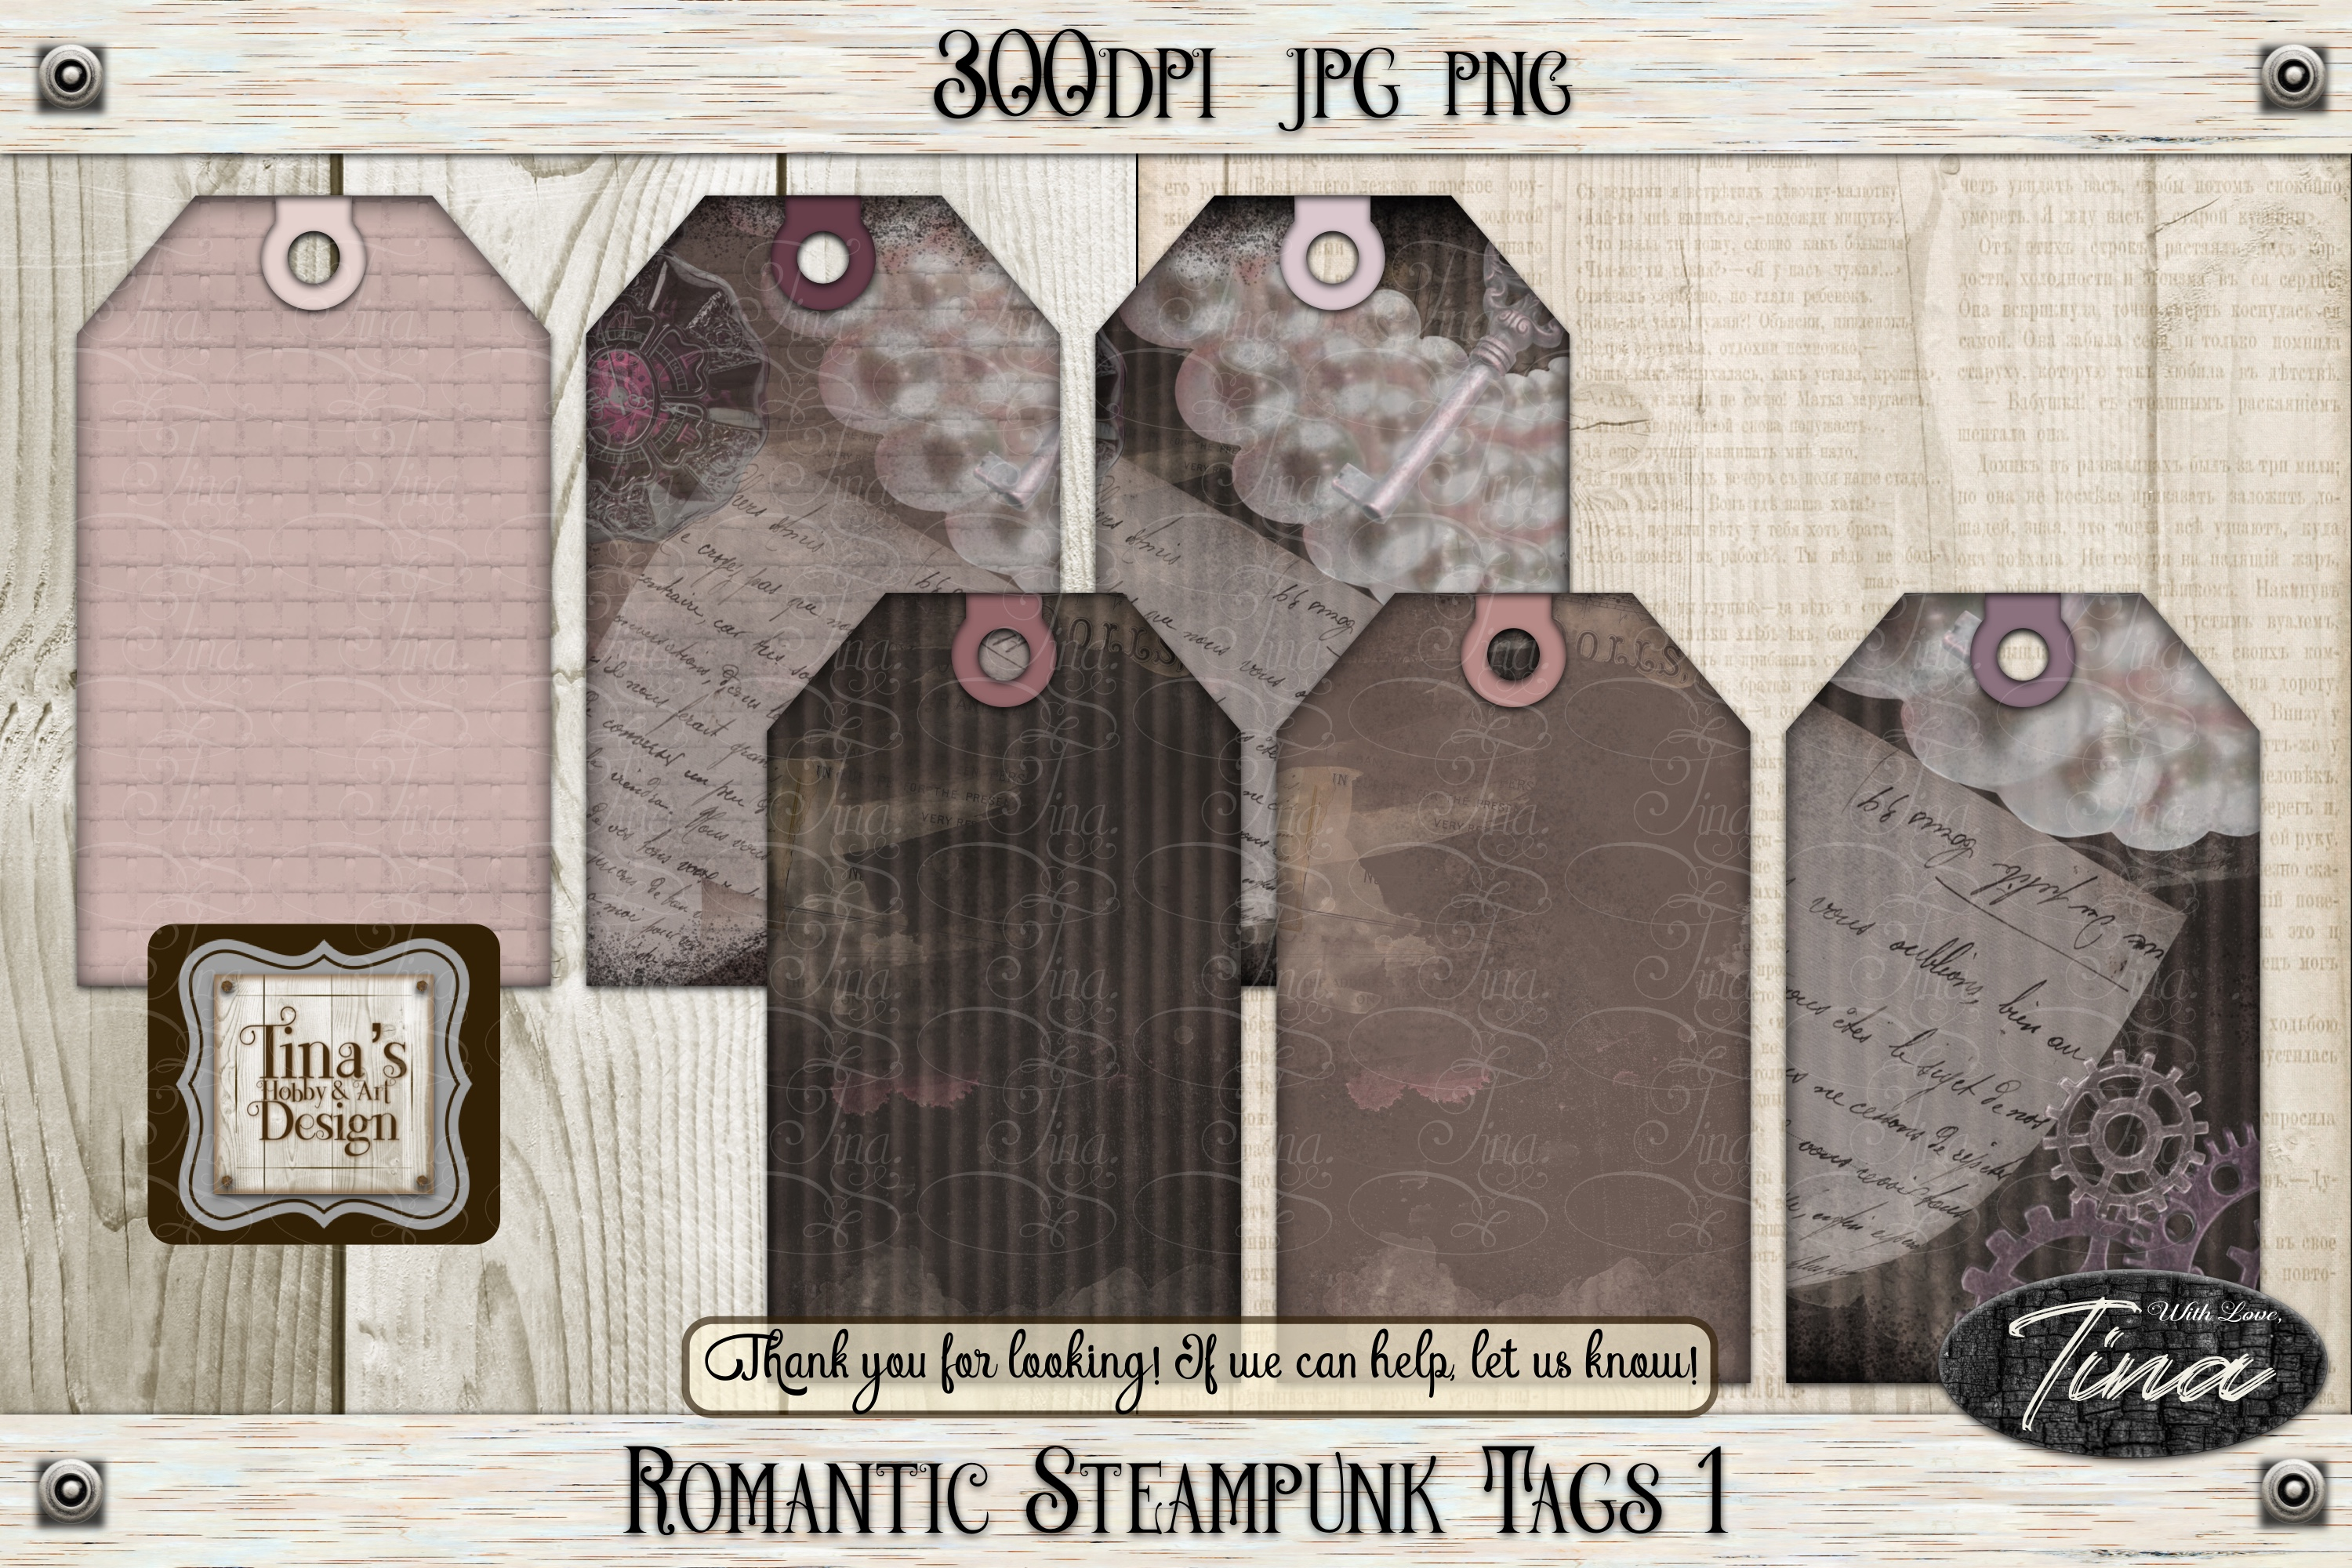 Romantic Steampunk 8.5x11 Collage Mauve Grunge 101918RS8 example image 7